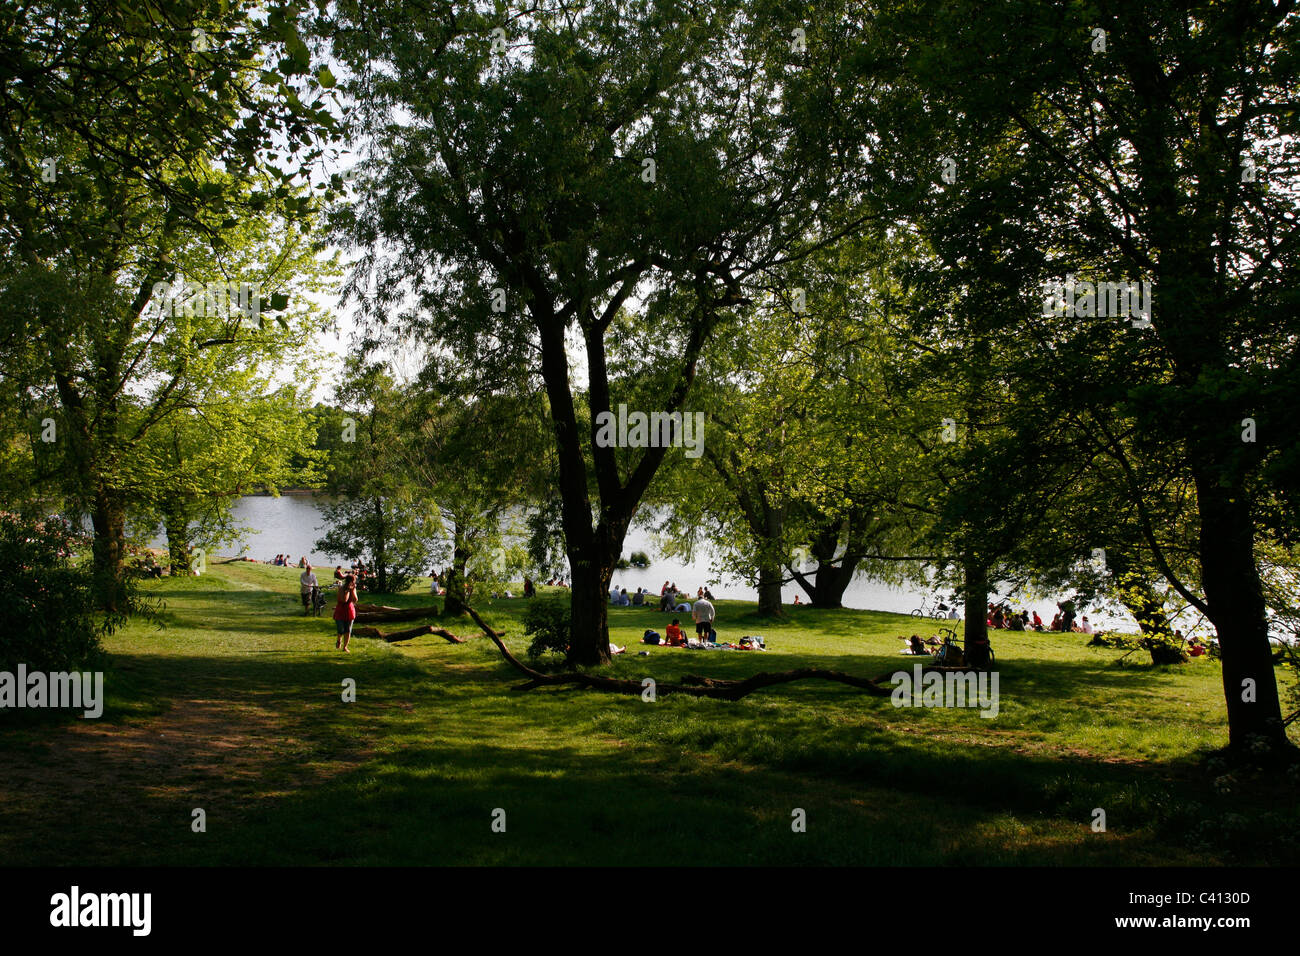 View down to the boating pond of Highgate Ponds, Hampstead Heath, Highgate, London, UK - Stock Image